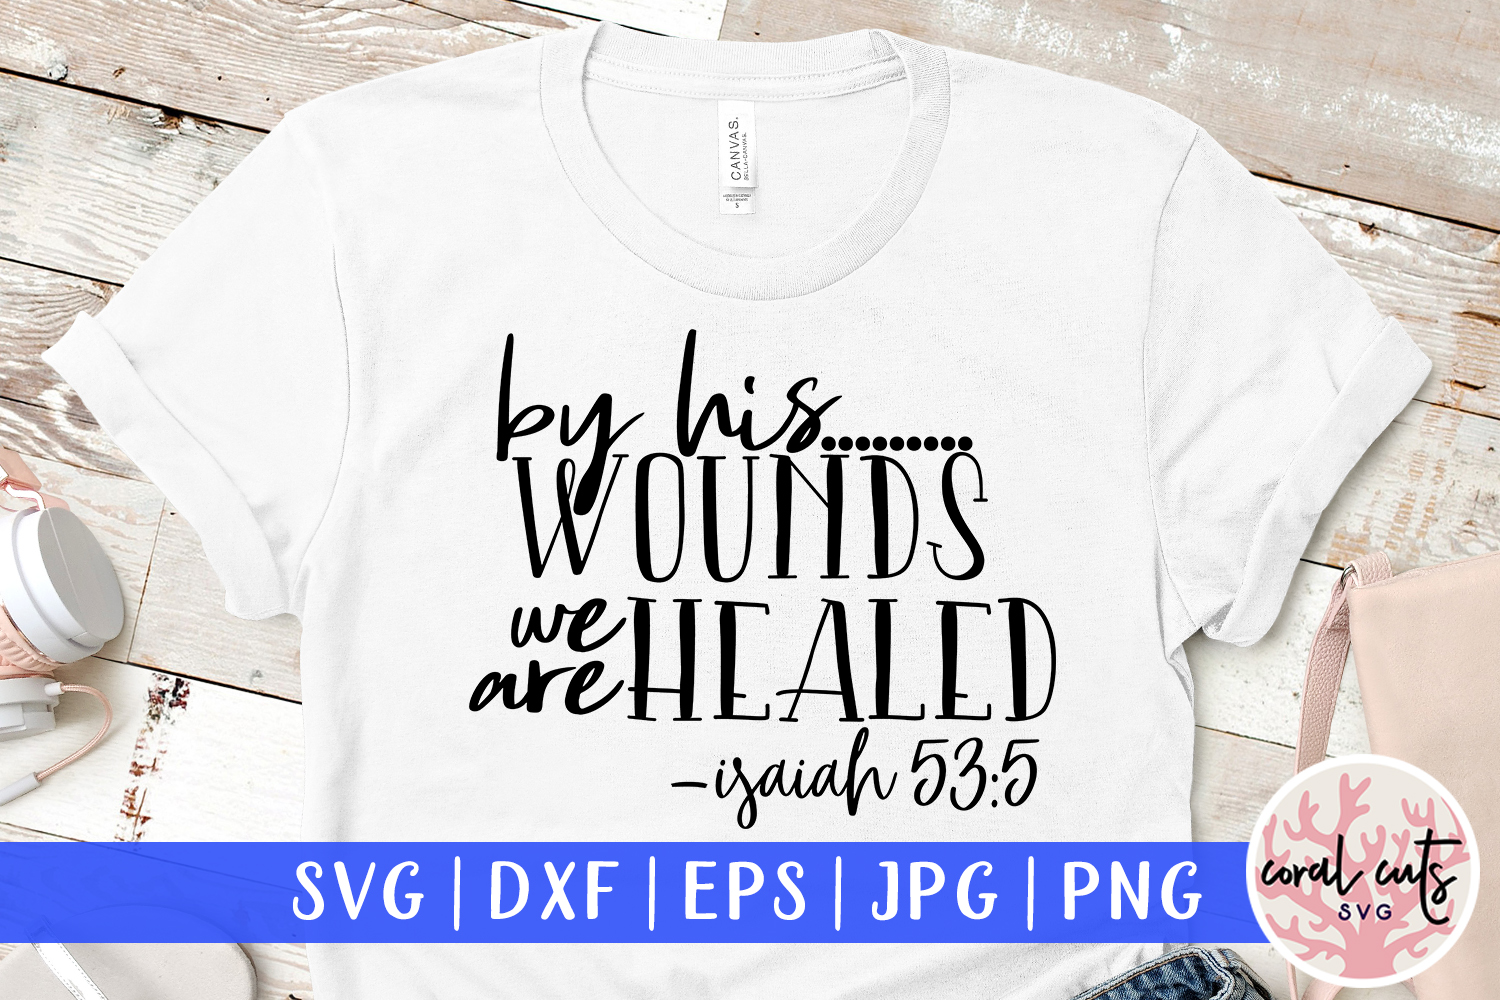 By his wounds we are healed - Easter SVG EPS DXF PNG File example image 1